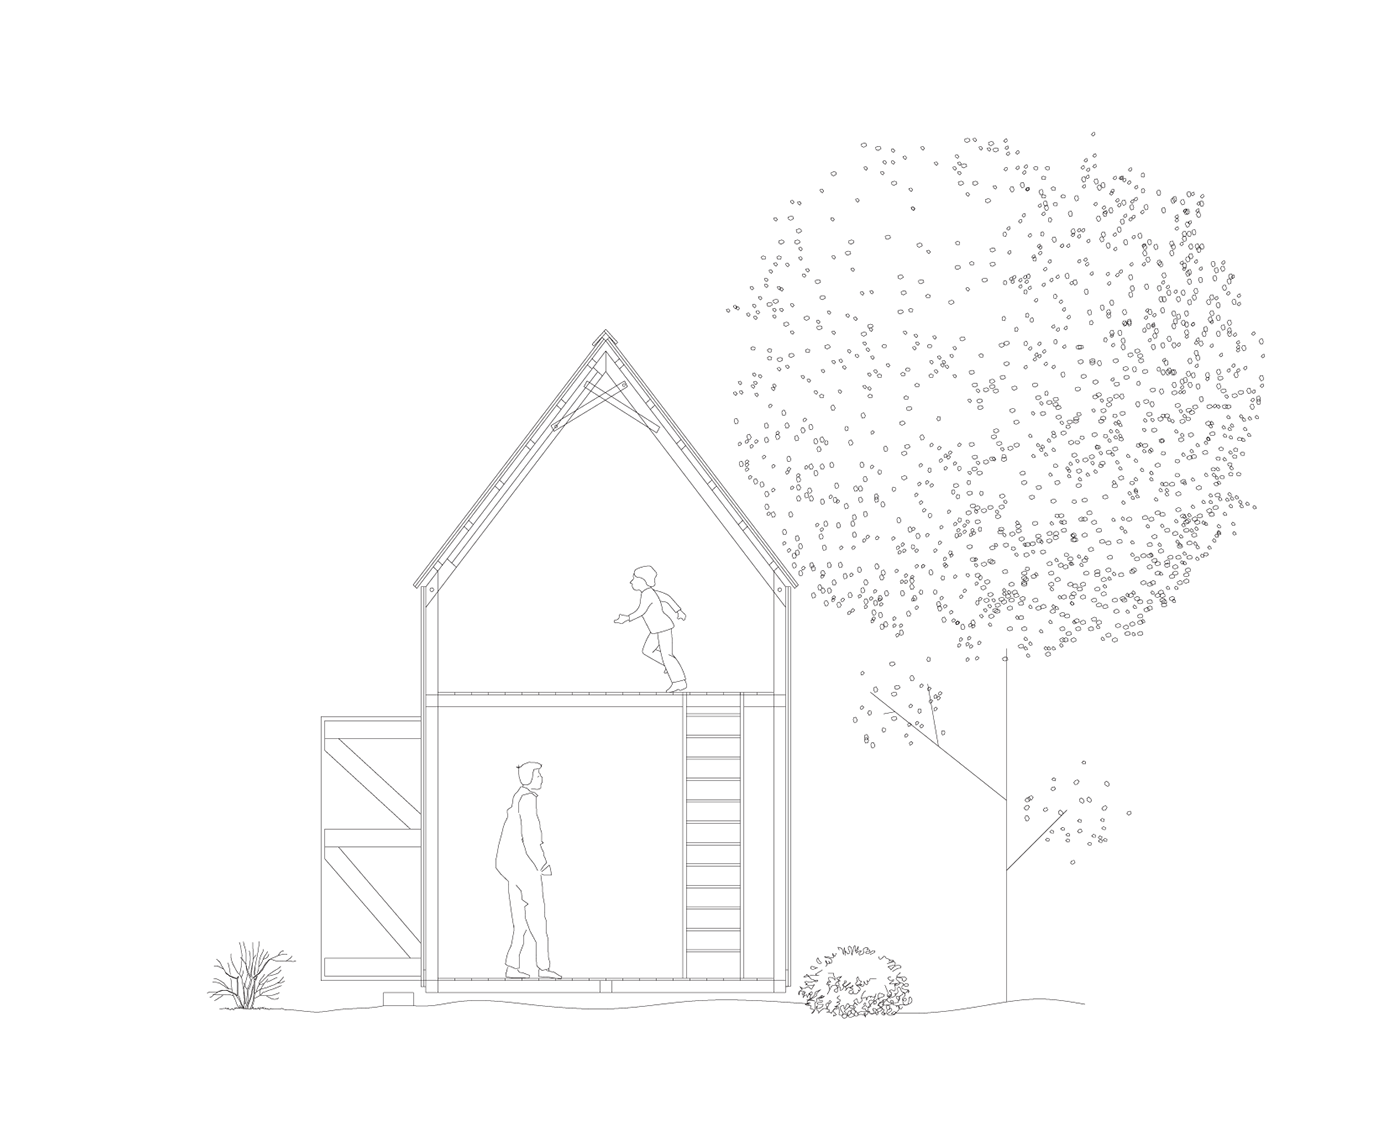 Tool Shed For My Dad On Behance